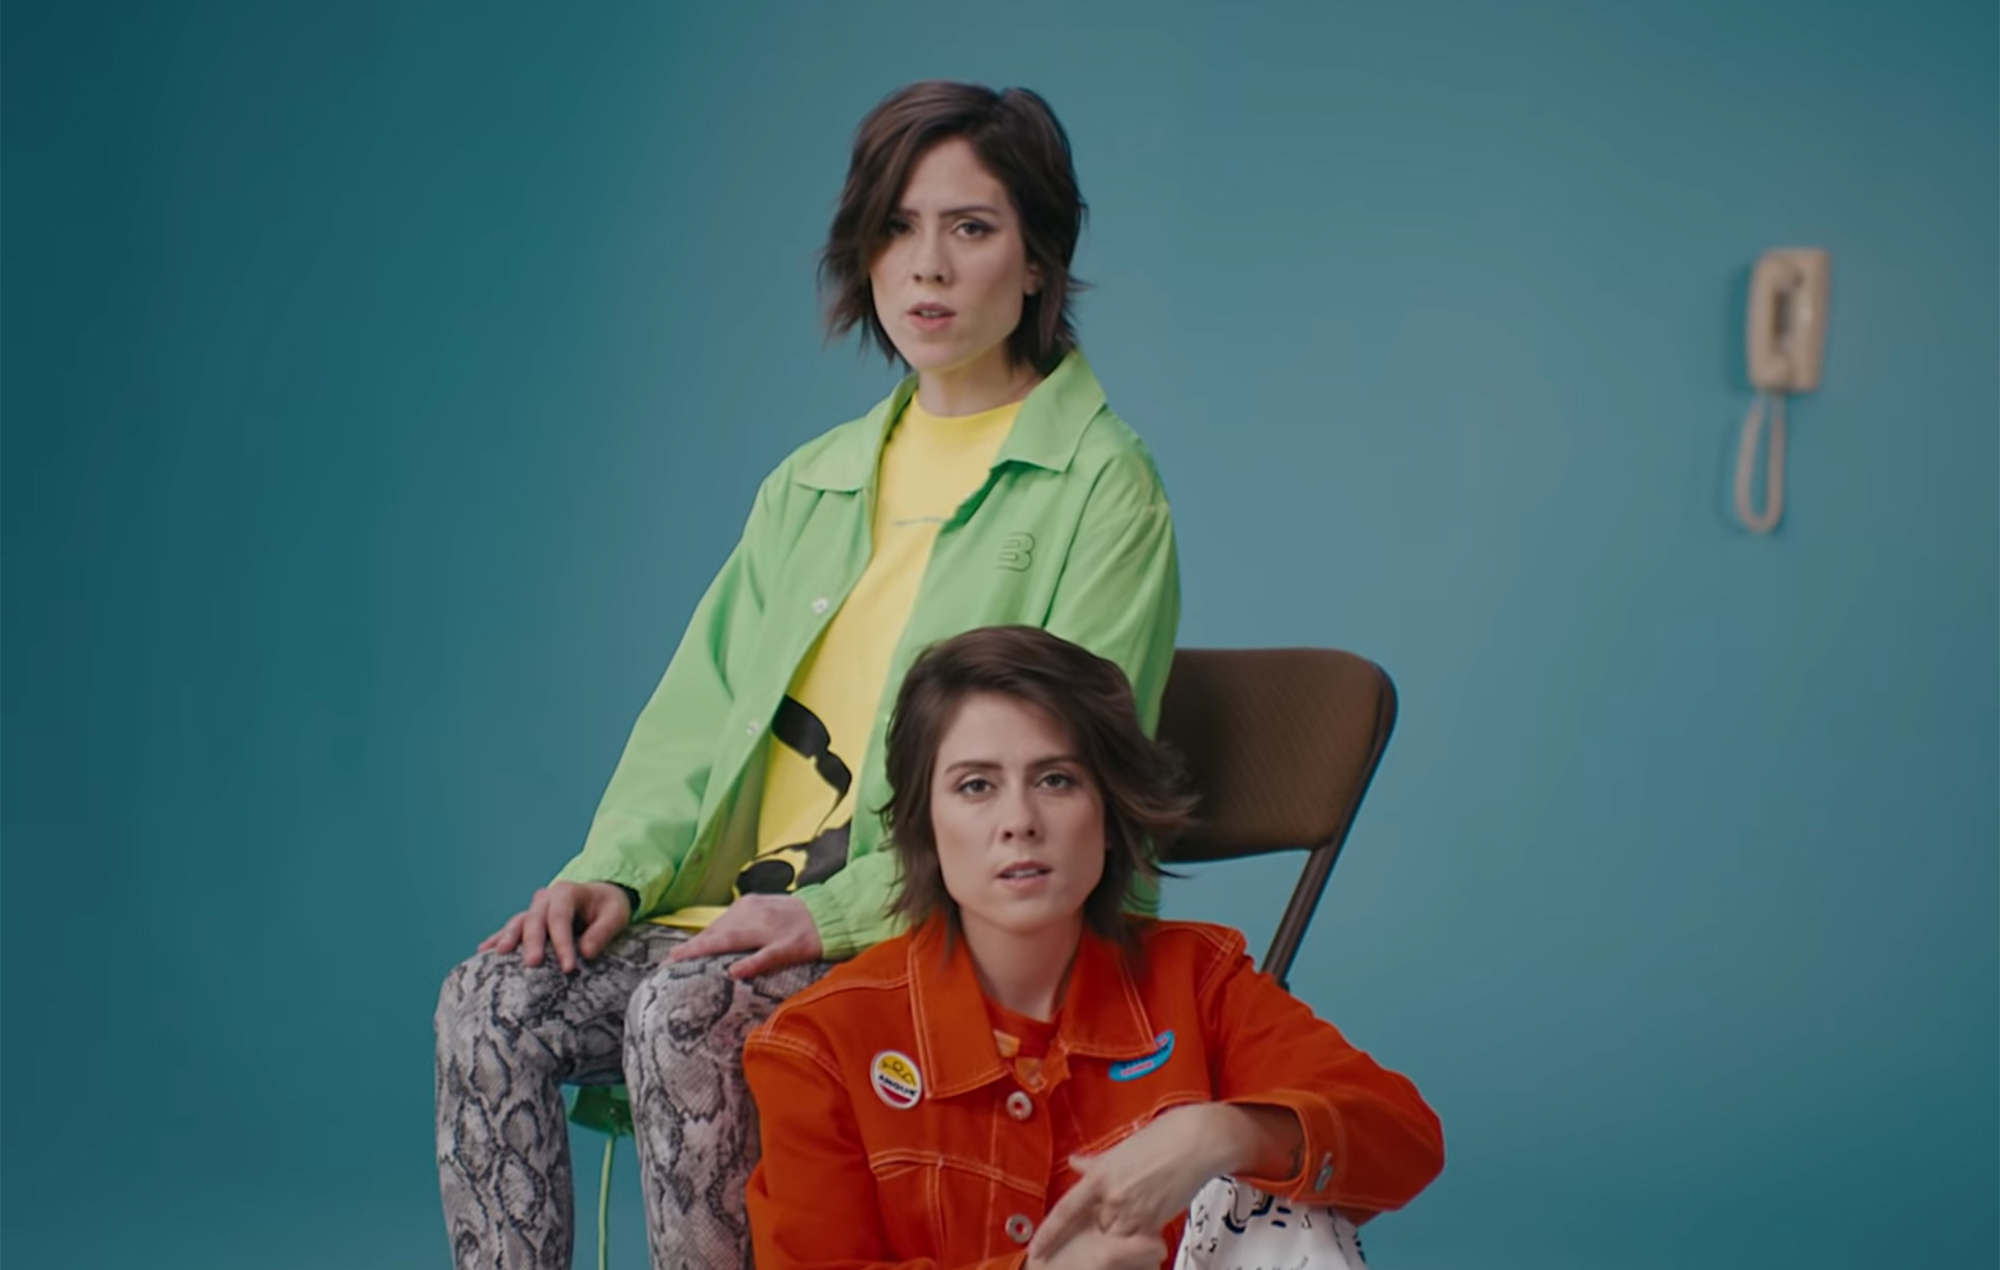 Watch Tegan and Sara perform 'I'll Be Back Someday' and discuss high school LSD habit